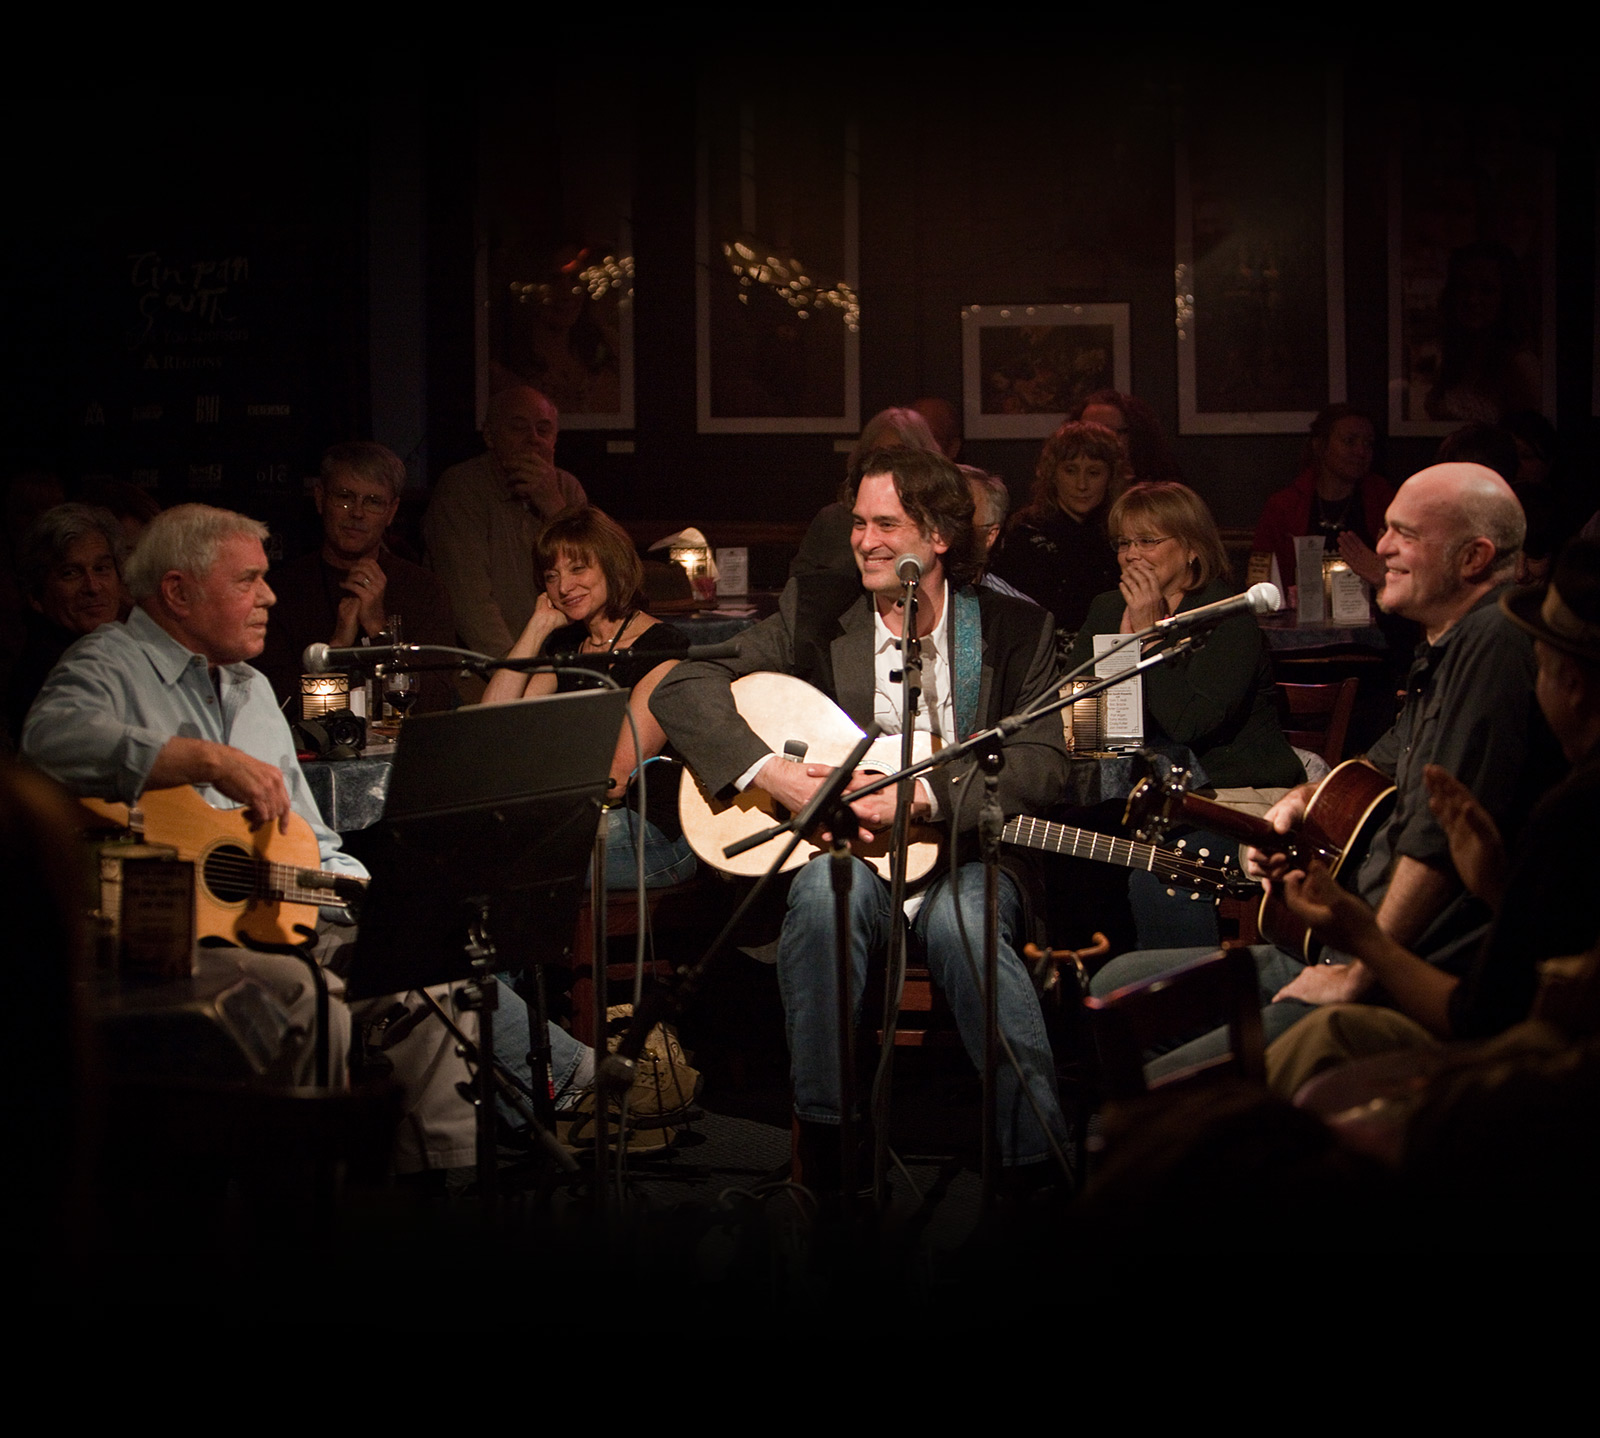 Tom T. Hall, Peter Cooper, and Eric Brace perform in-the-round at Nashville's Bluebird Cafe